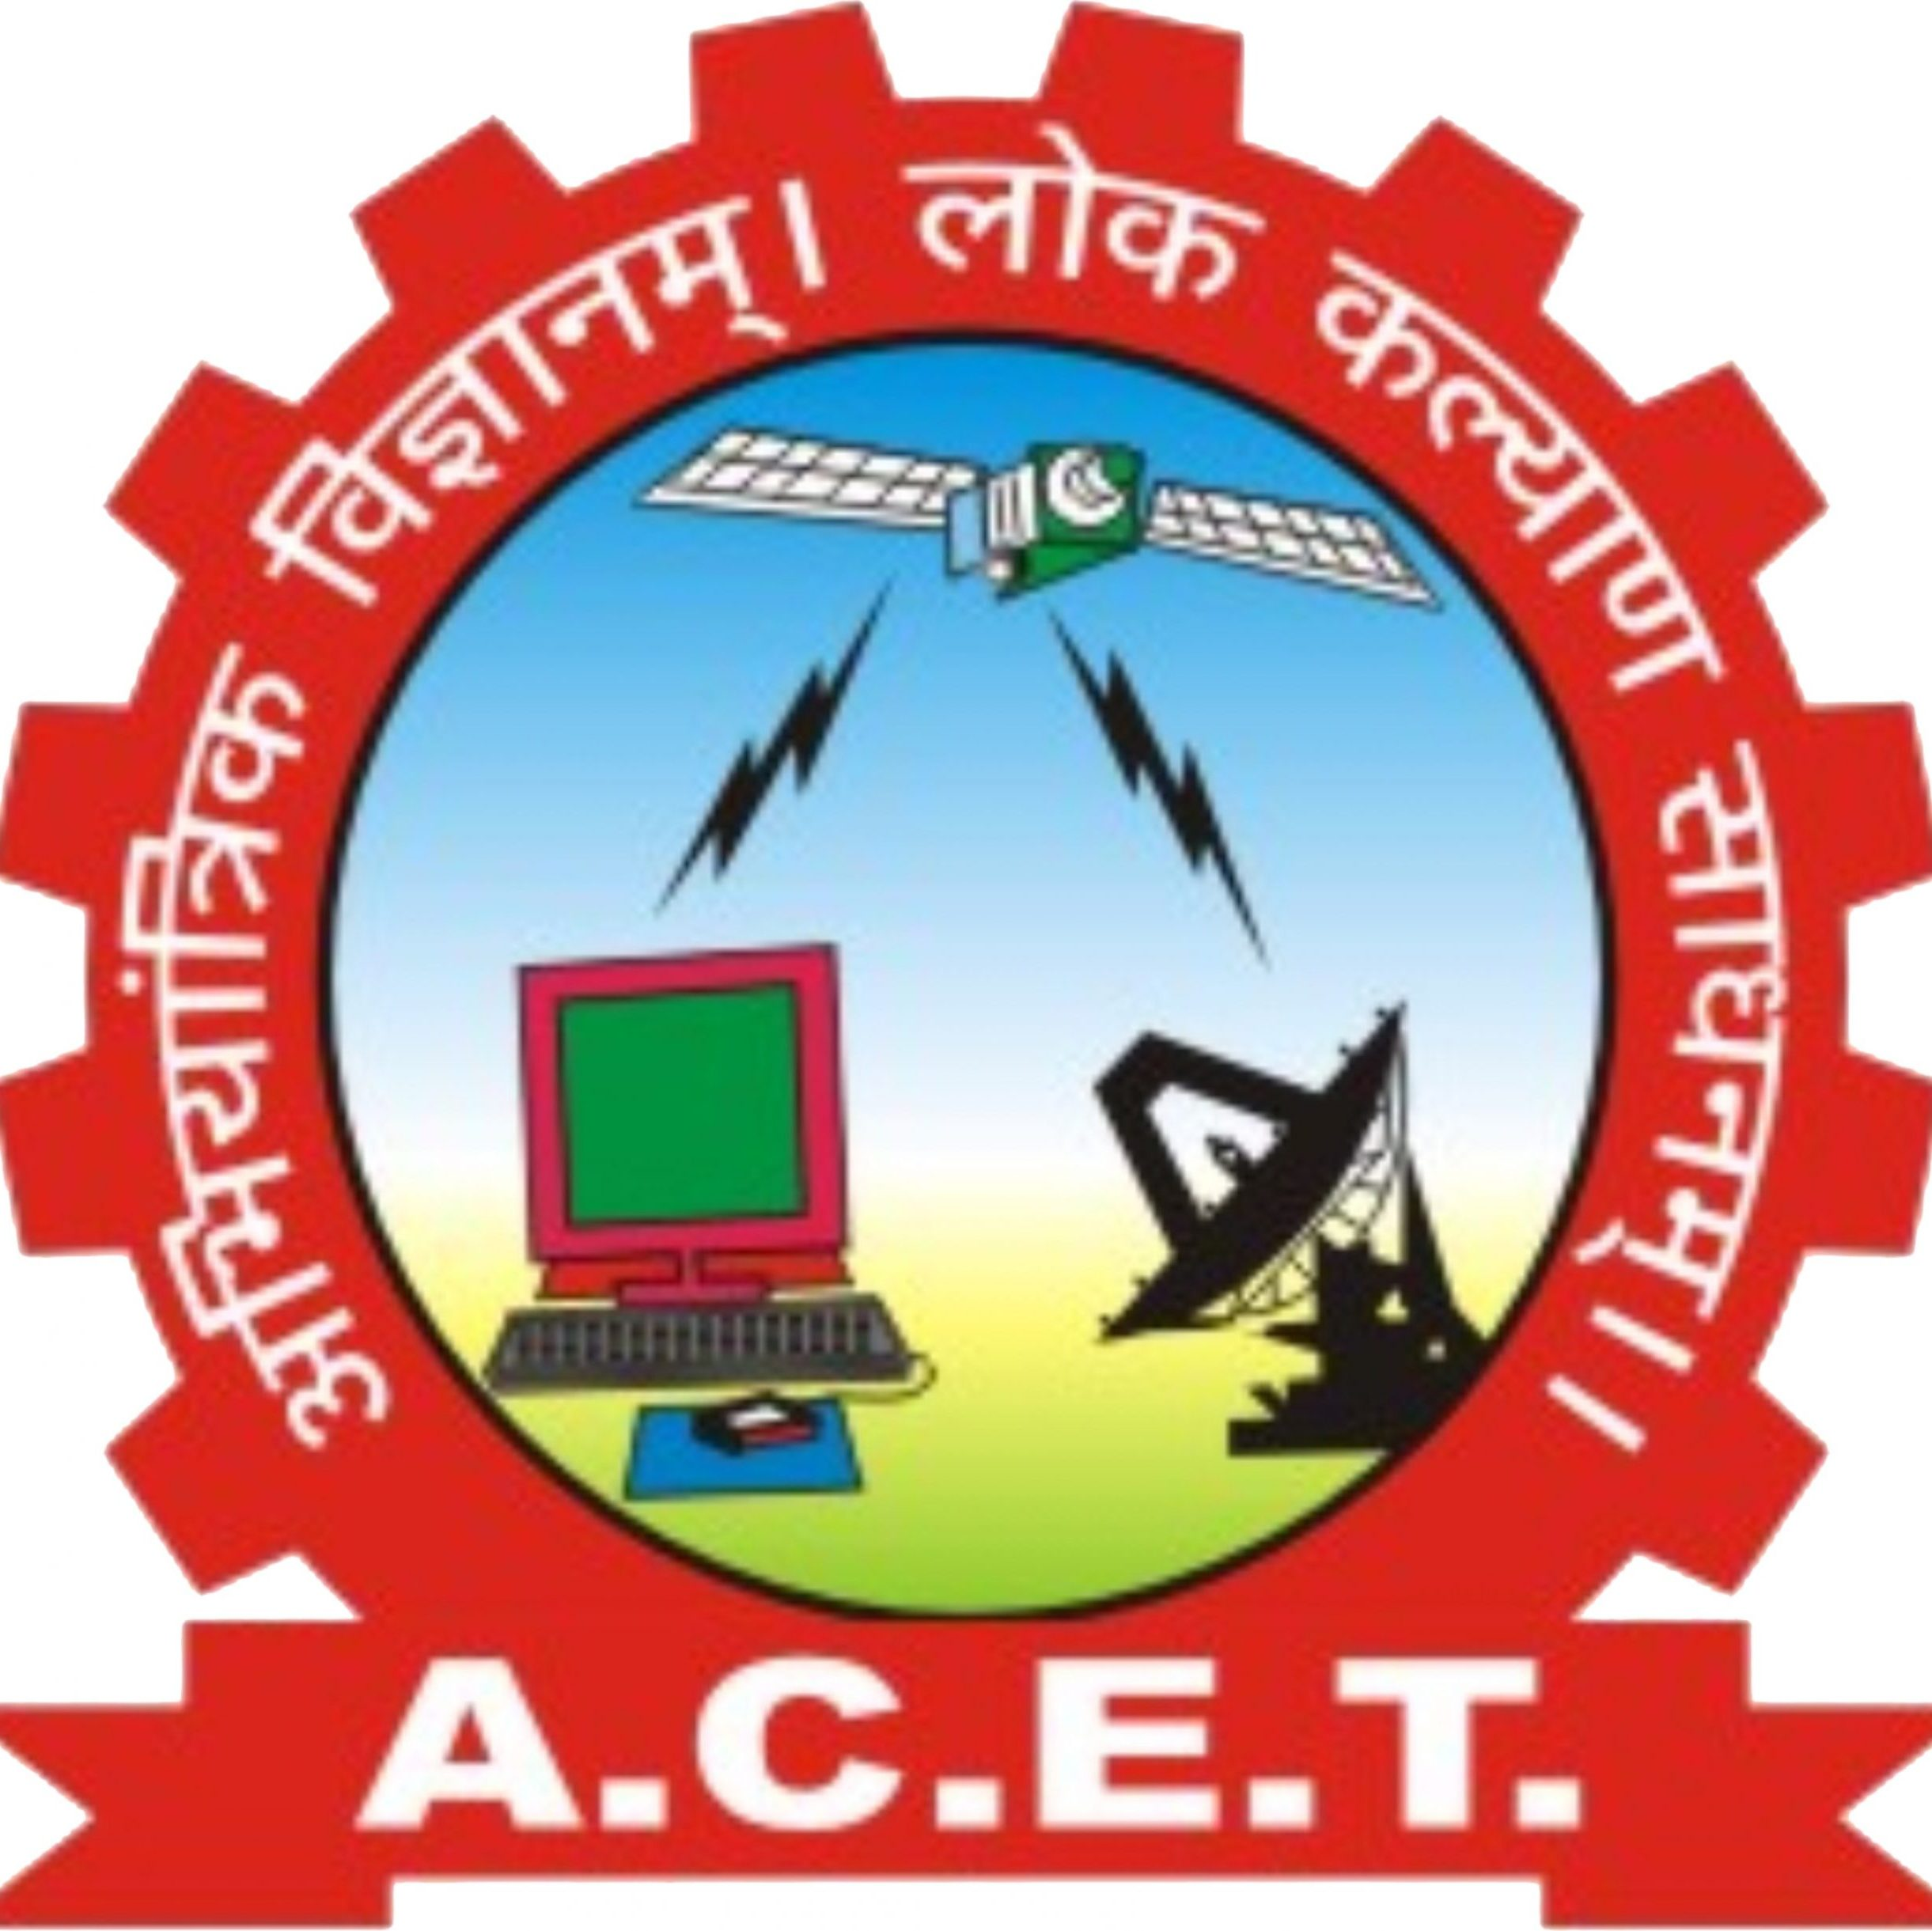 ALIGARH COLLEGE ENGINEERING AND TECHNOLOGY